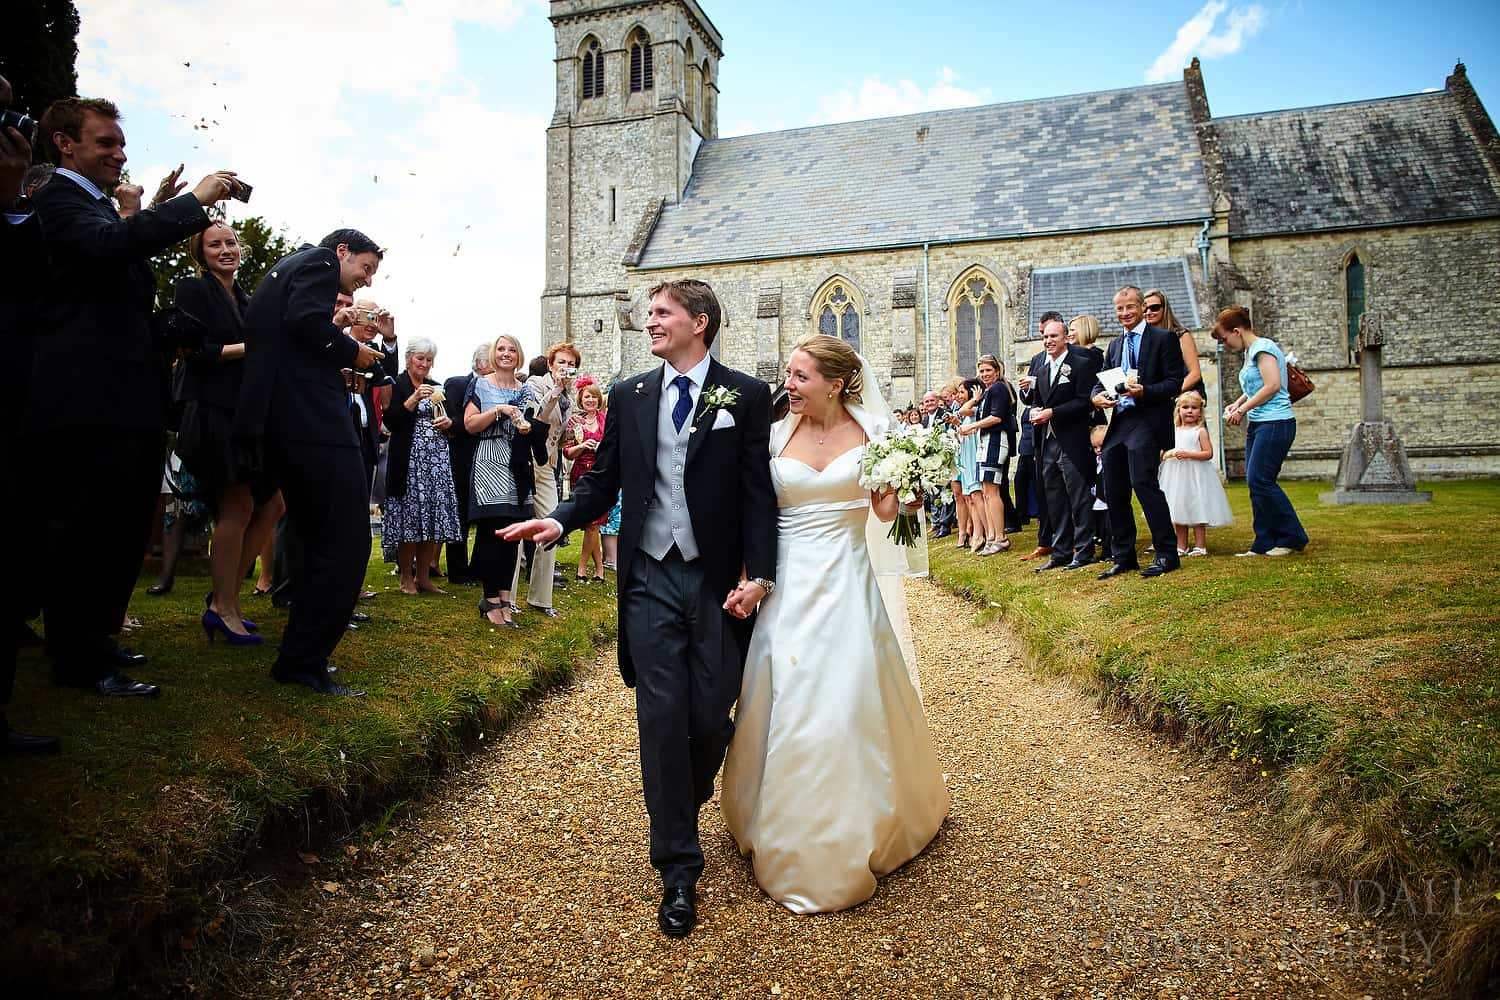 Bride and groom leave All Saint's church in Dogmersfield